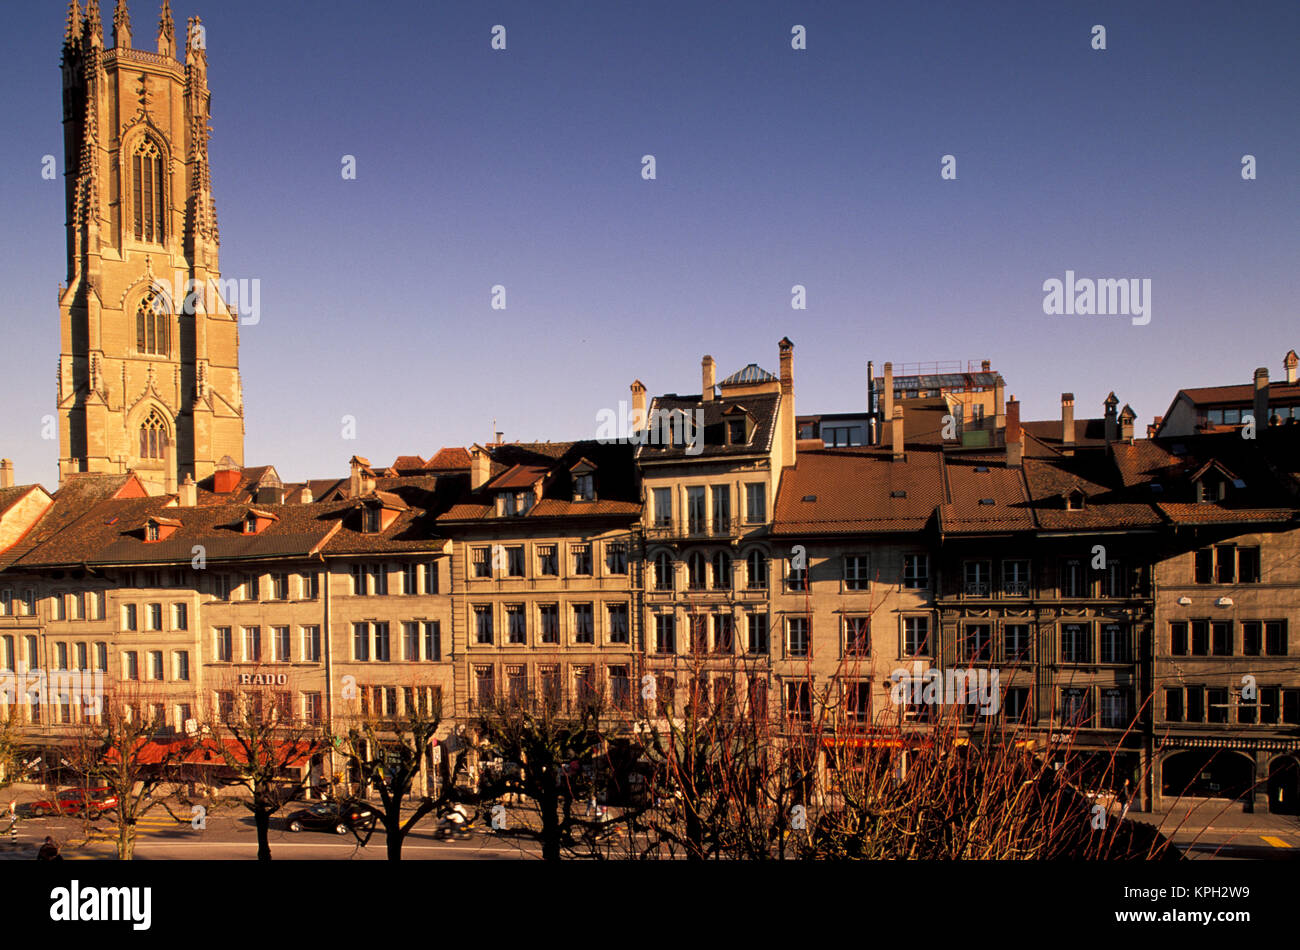 Switzerland, Fribourg. Cathedral St. Nicholas and Place de Notre Dame - Stock Image